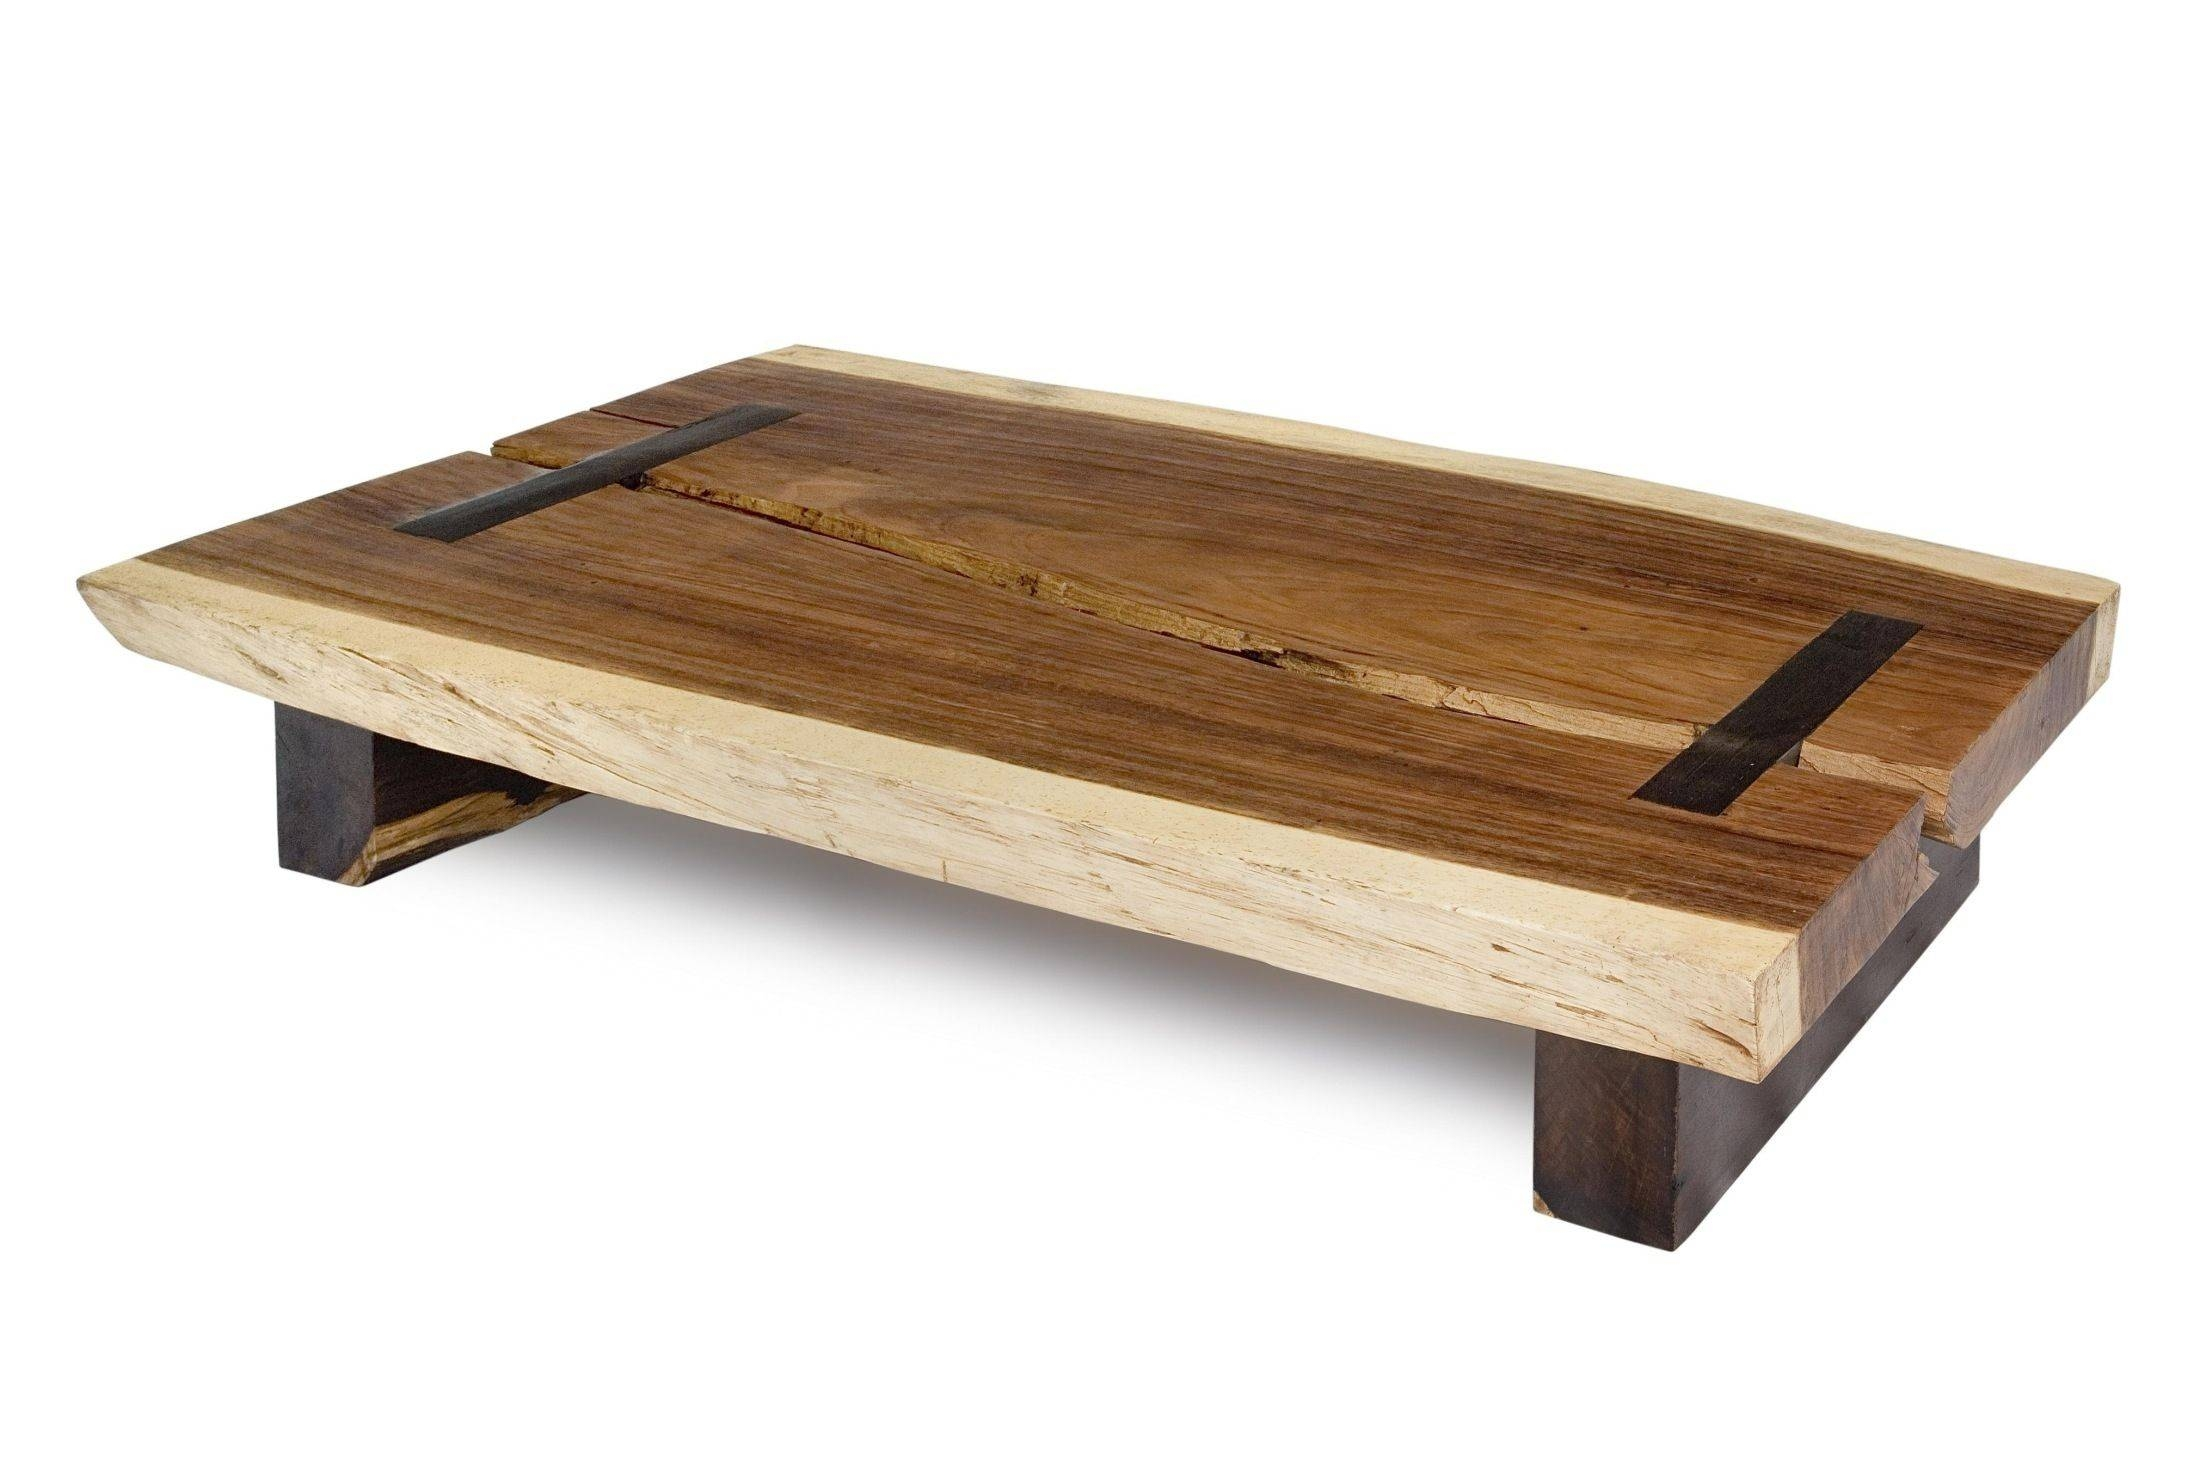 Reclaimed Wood Coffee Table Sets - Coffee Addicts in Reclaimed Wood Coffee Tables (Image 11 of 15)